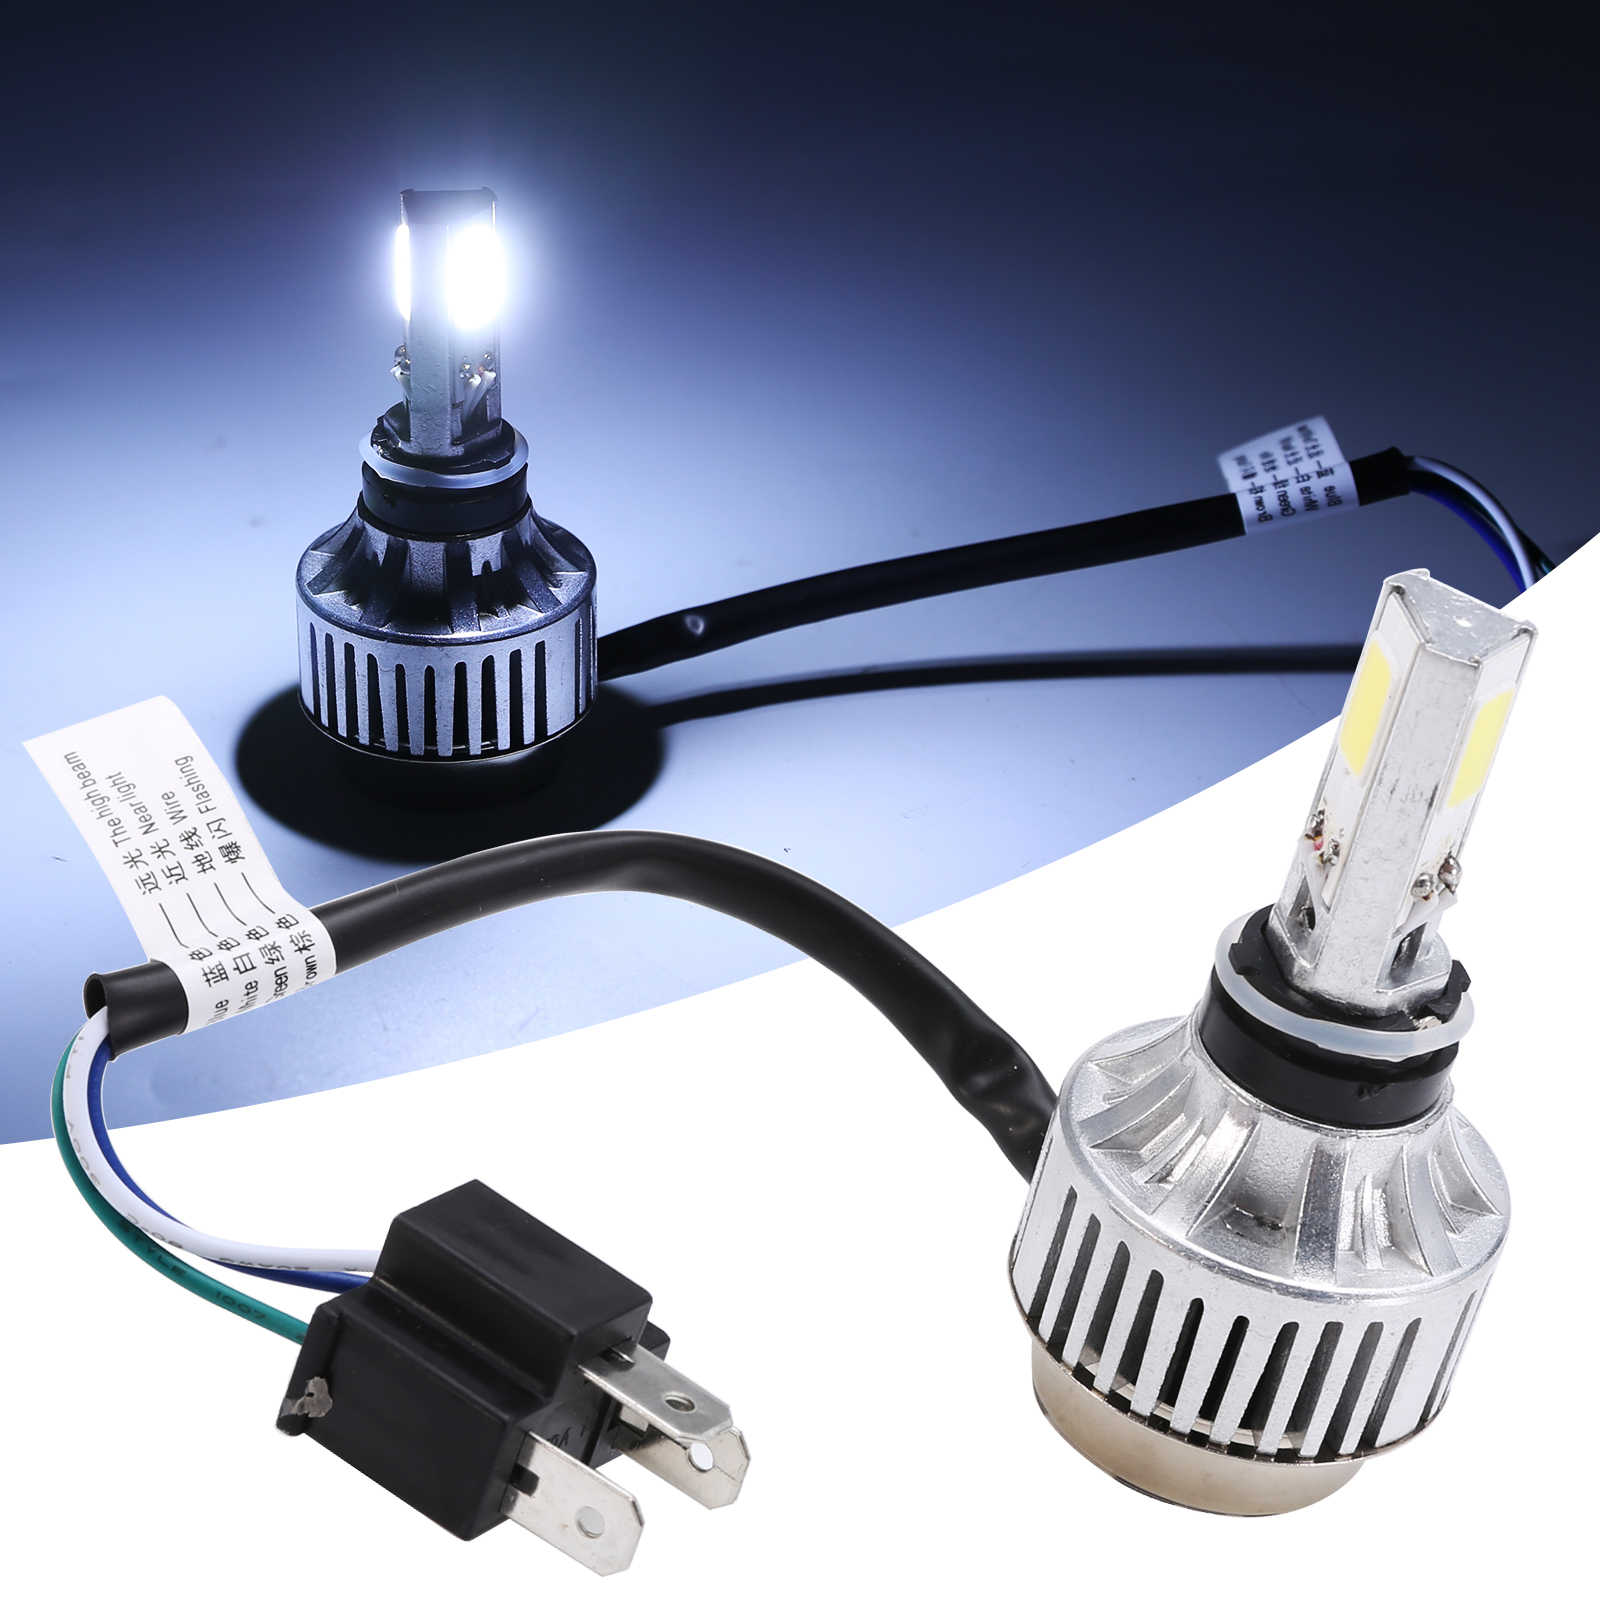 1 Set H4 BA20D LED Hi/Lo Beam Motorcycle Headlight Front Light Lamp Bulb 6500K Motor White Headlamp Aluminum Alloy Housing